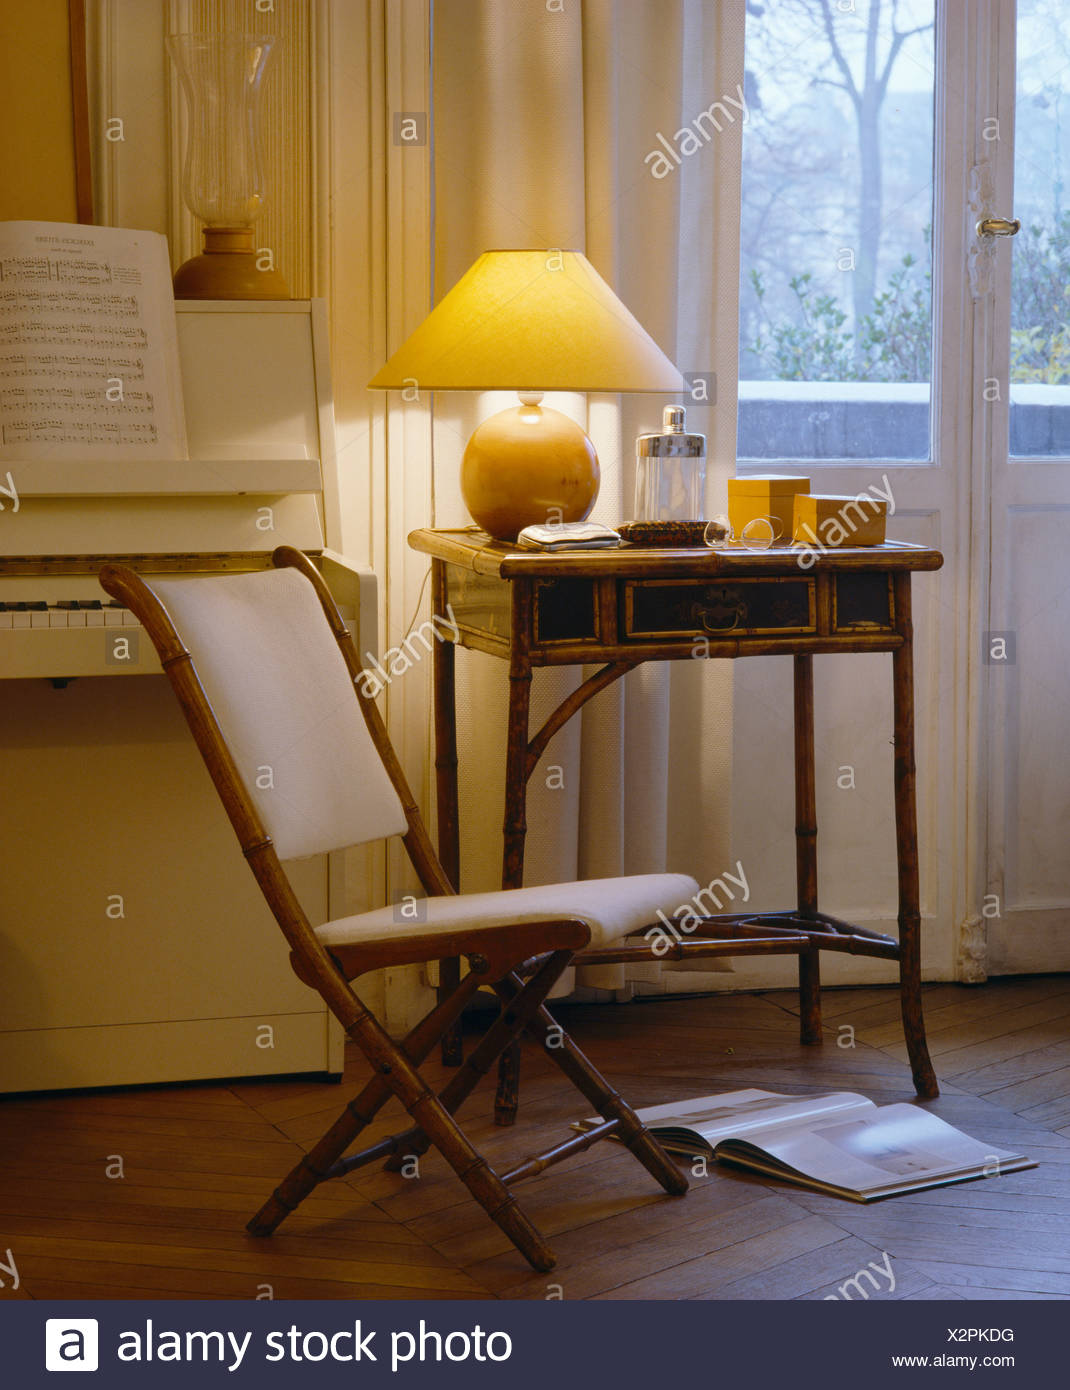 Folding Chair With Cream Cushions Beside Antique Table With Lighted Lamp In  Front Of French Windows